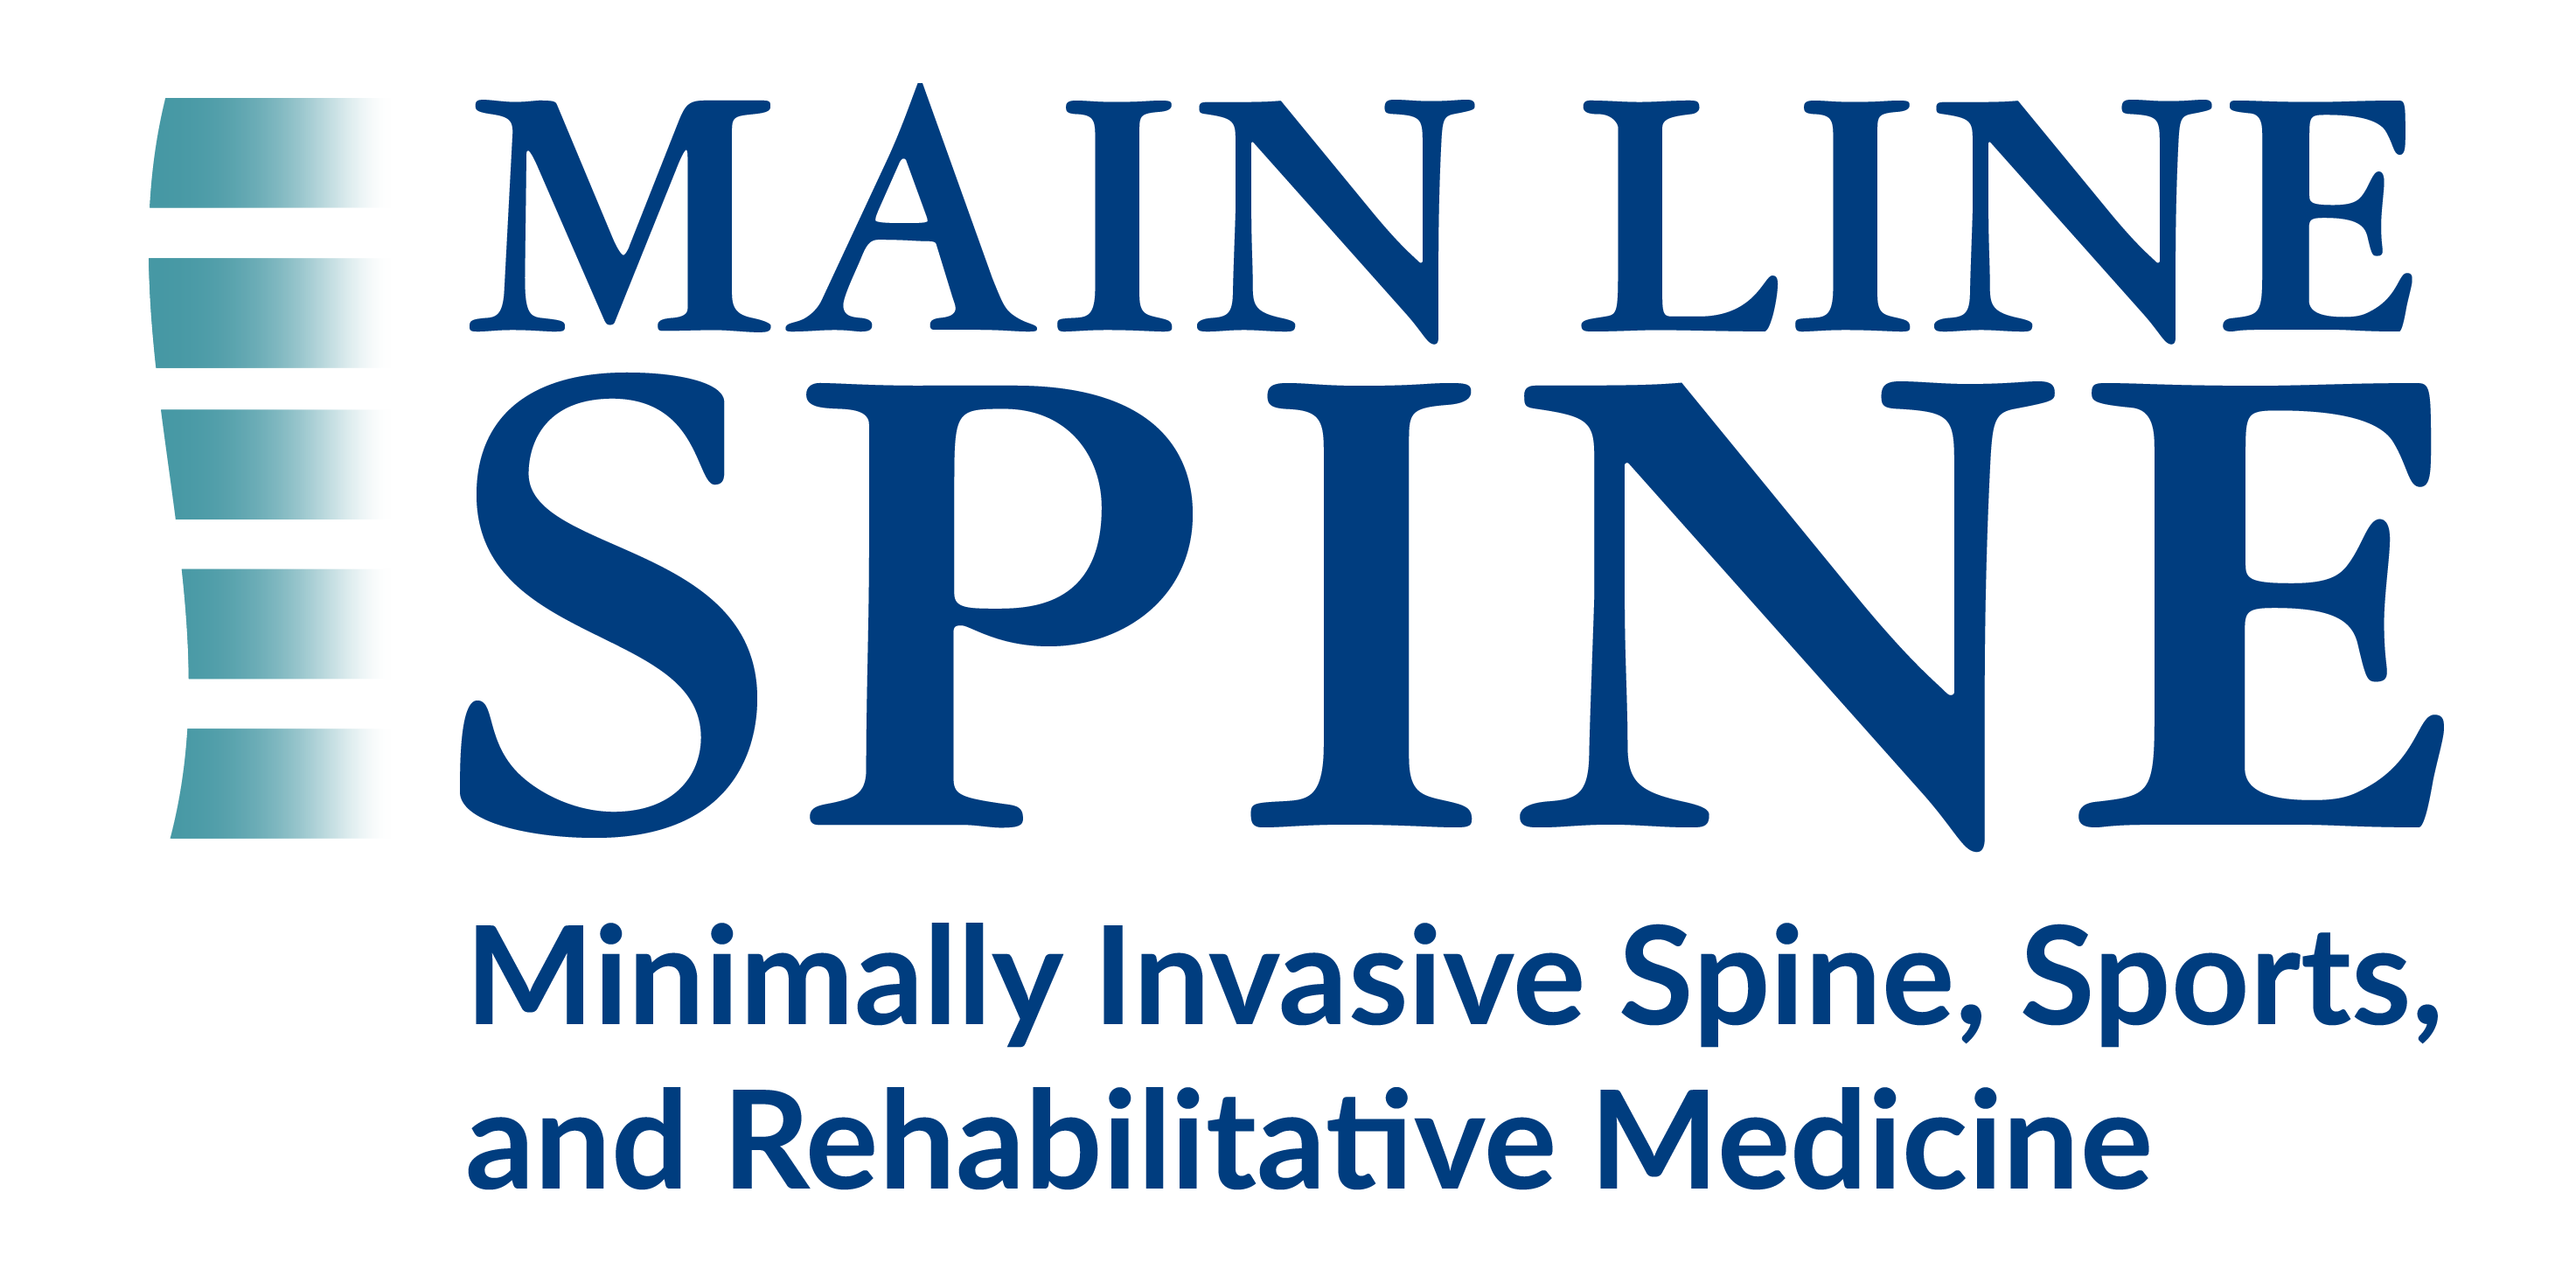 Main Line Spine Logo: Minimally Invasive Spine, Sports and Rehabilitation Medicine